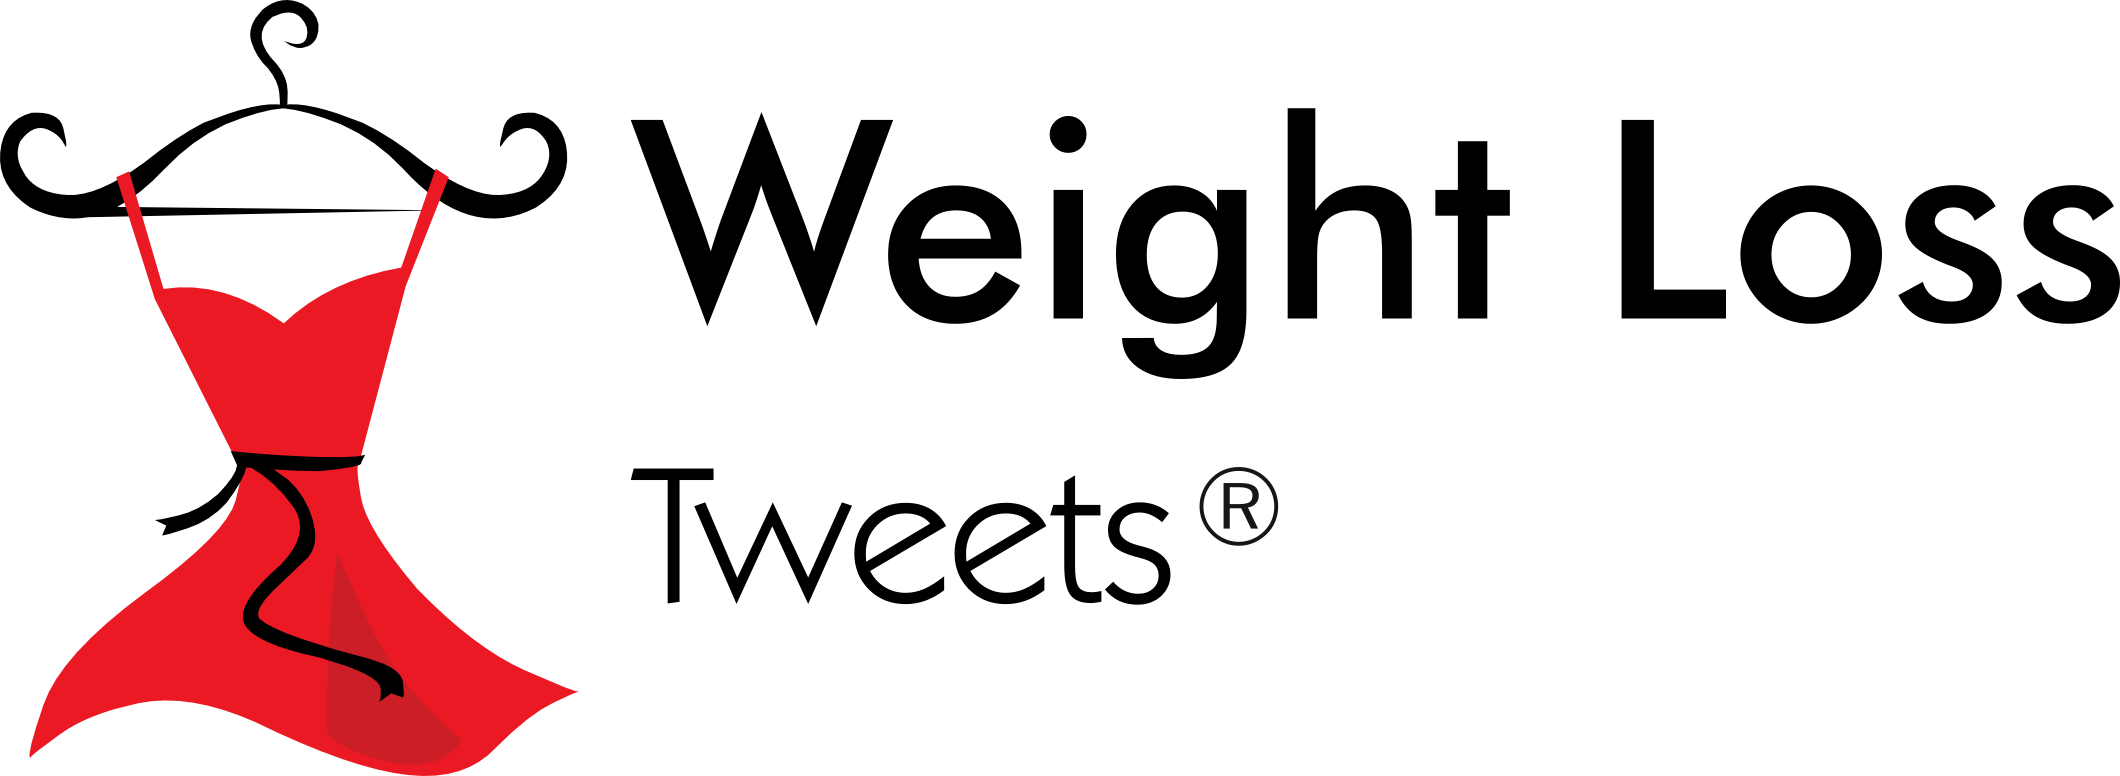 Weight Loss Tweets